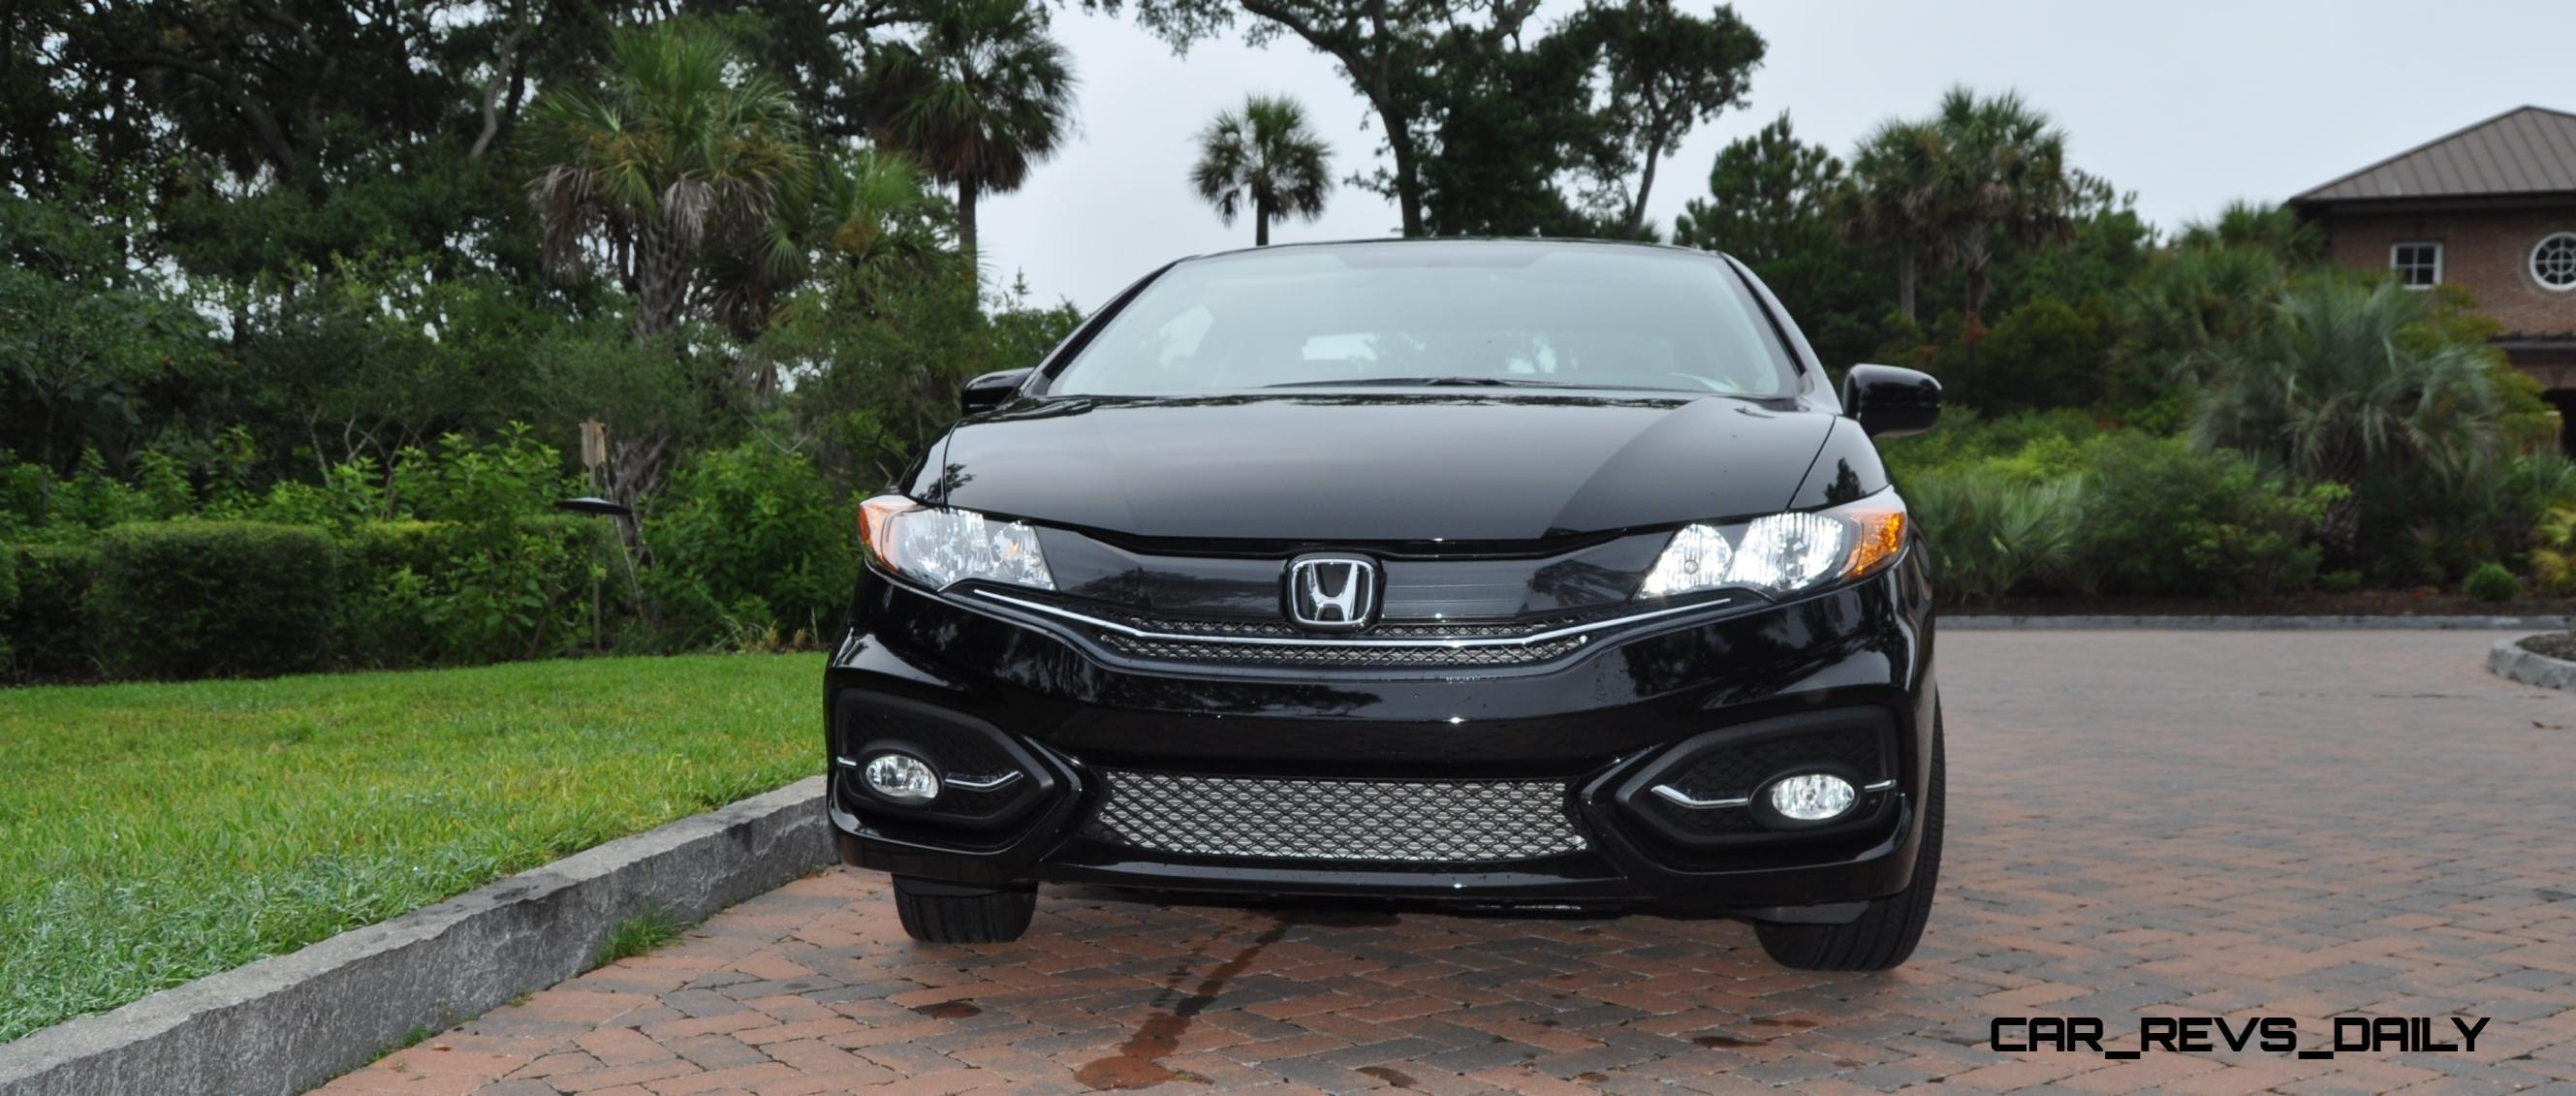 road test review 2014 honda civic ex l coupe 136. Black Bedroom Furniture Sets. Home Design Ideas